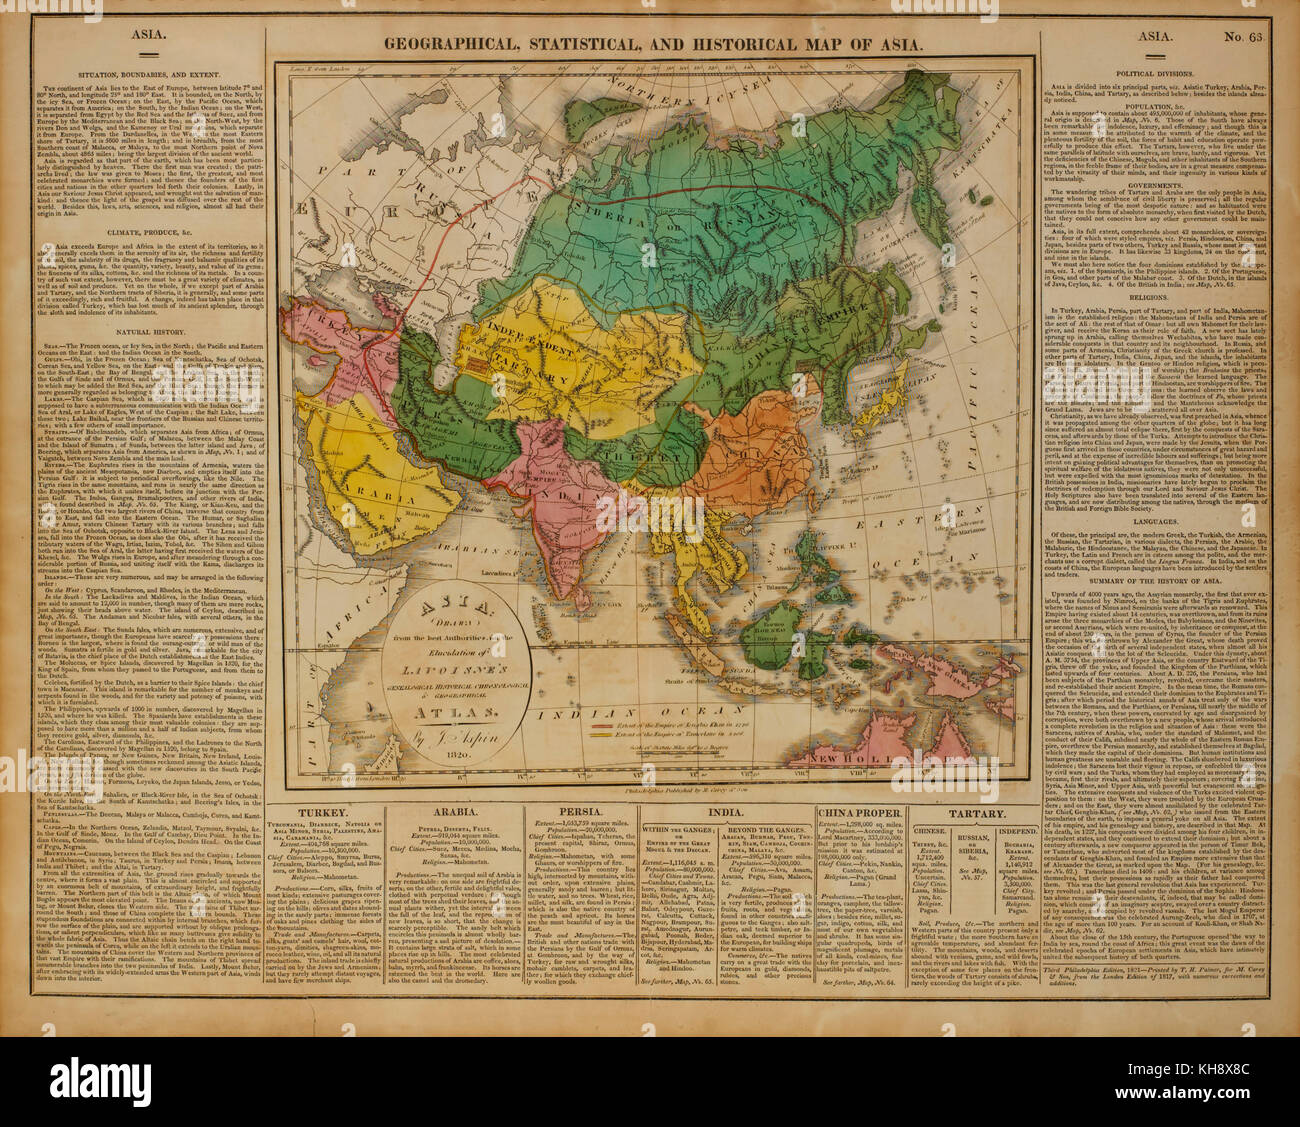 Geographical, Statistical and Historical Map of Asia, 1820 - Stock Image